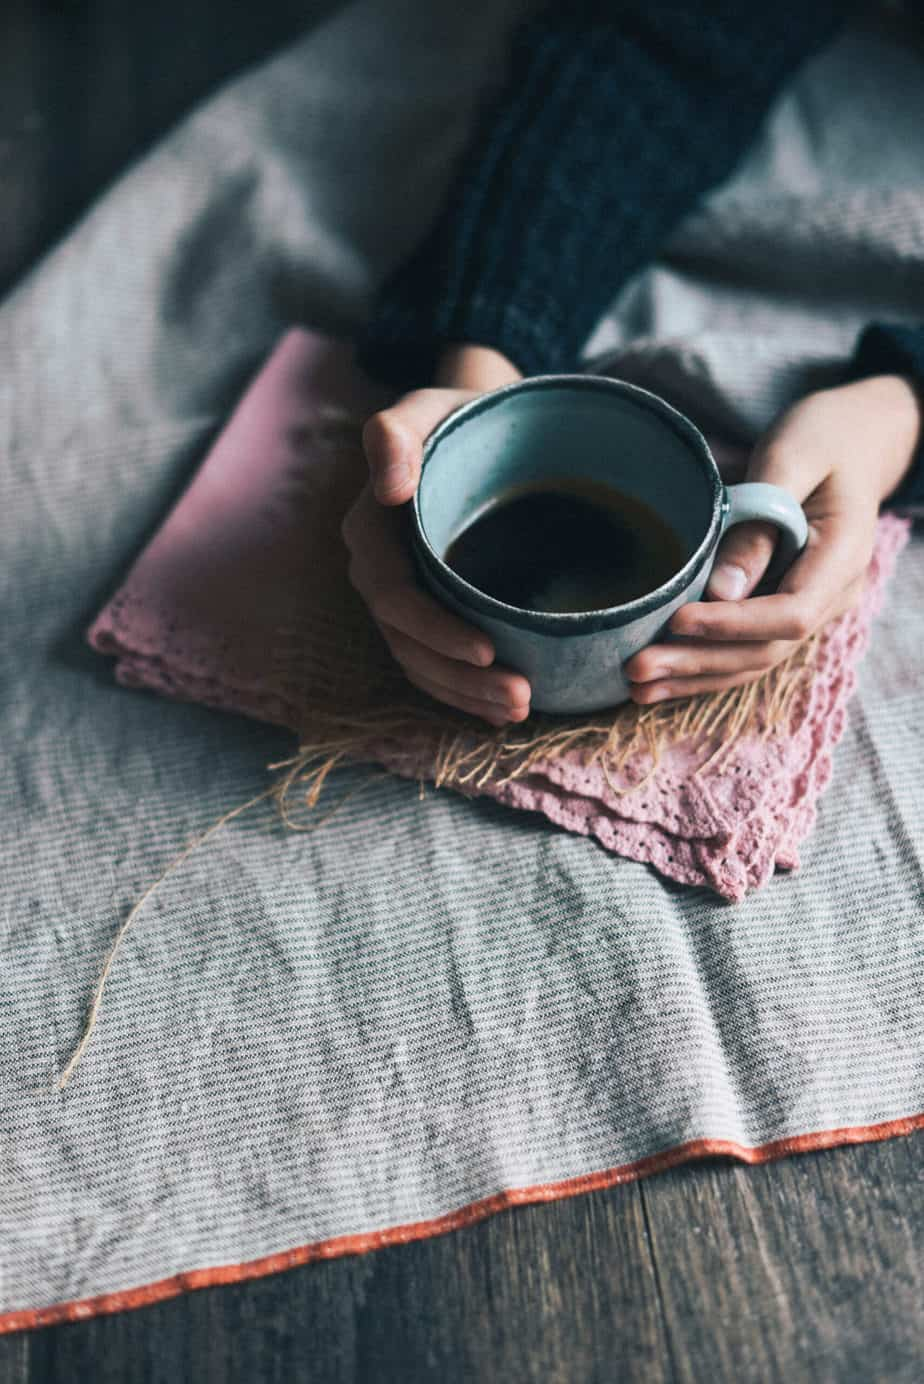 7 Reasons to Take a Day of Rest